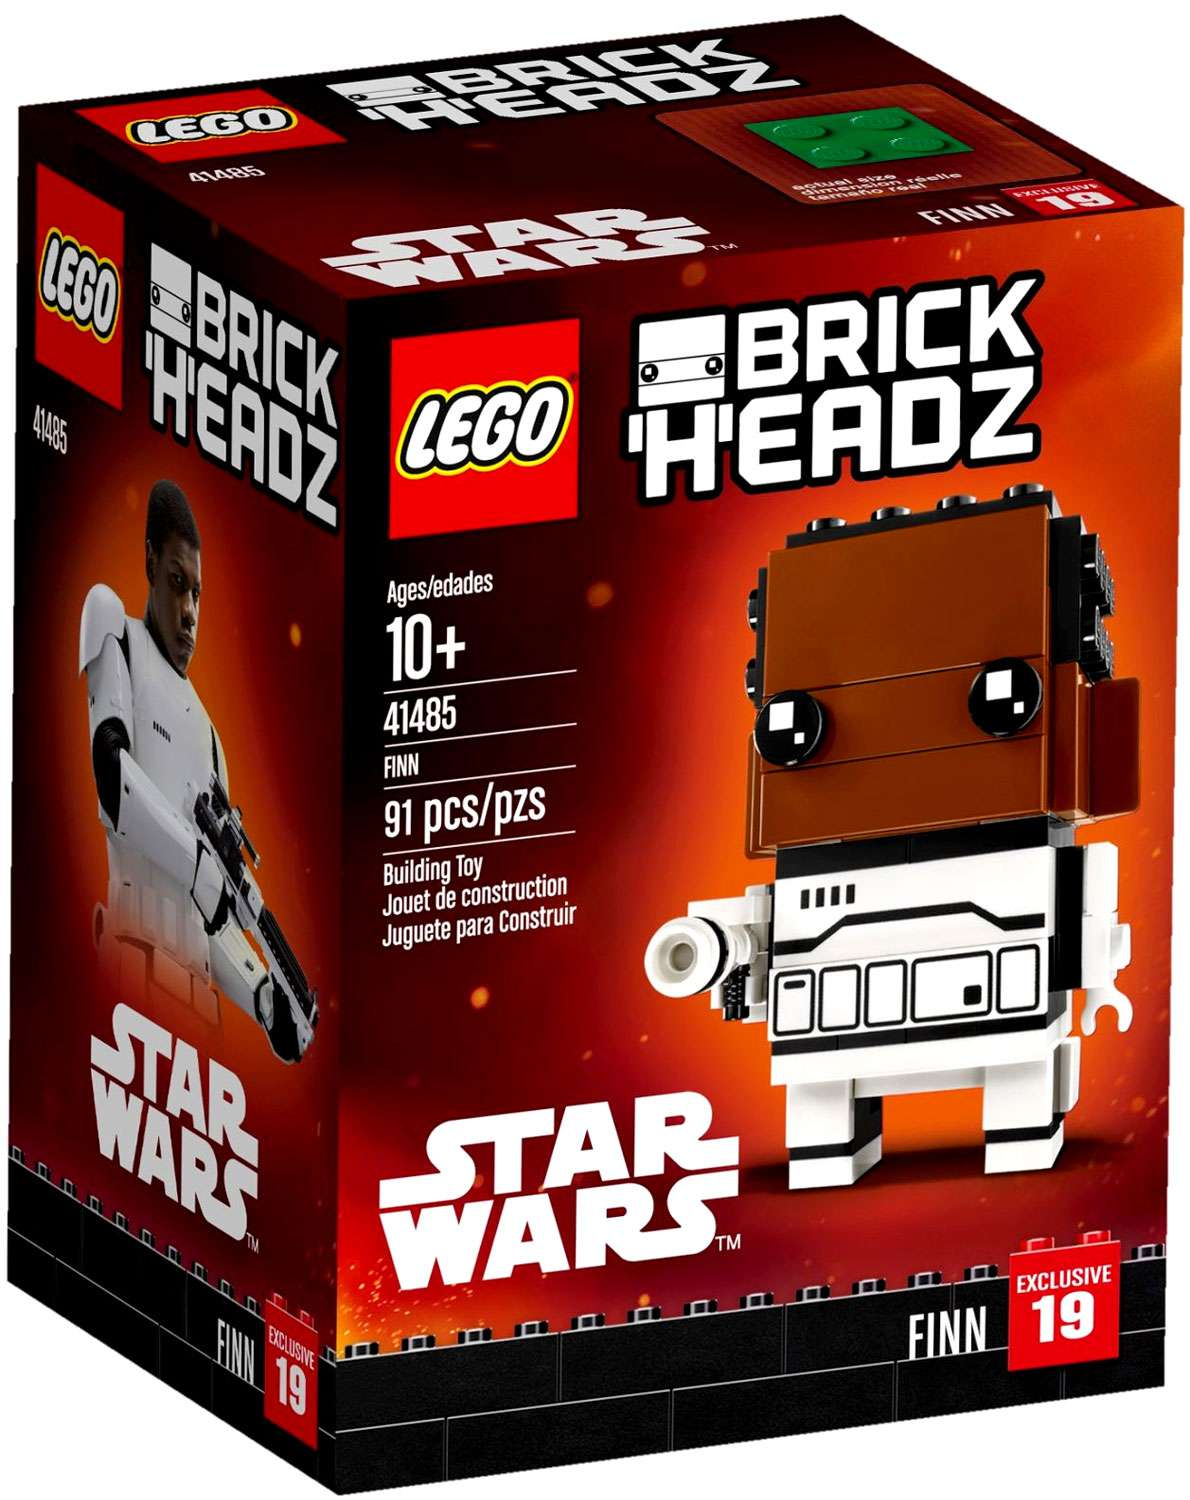 TFA Finn Brick Headz Lego Set 1